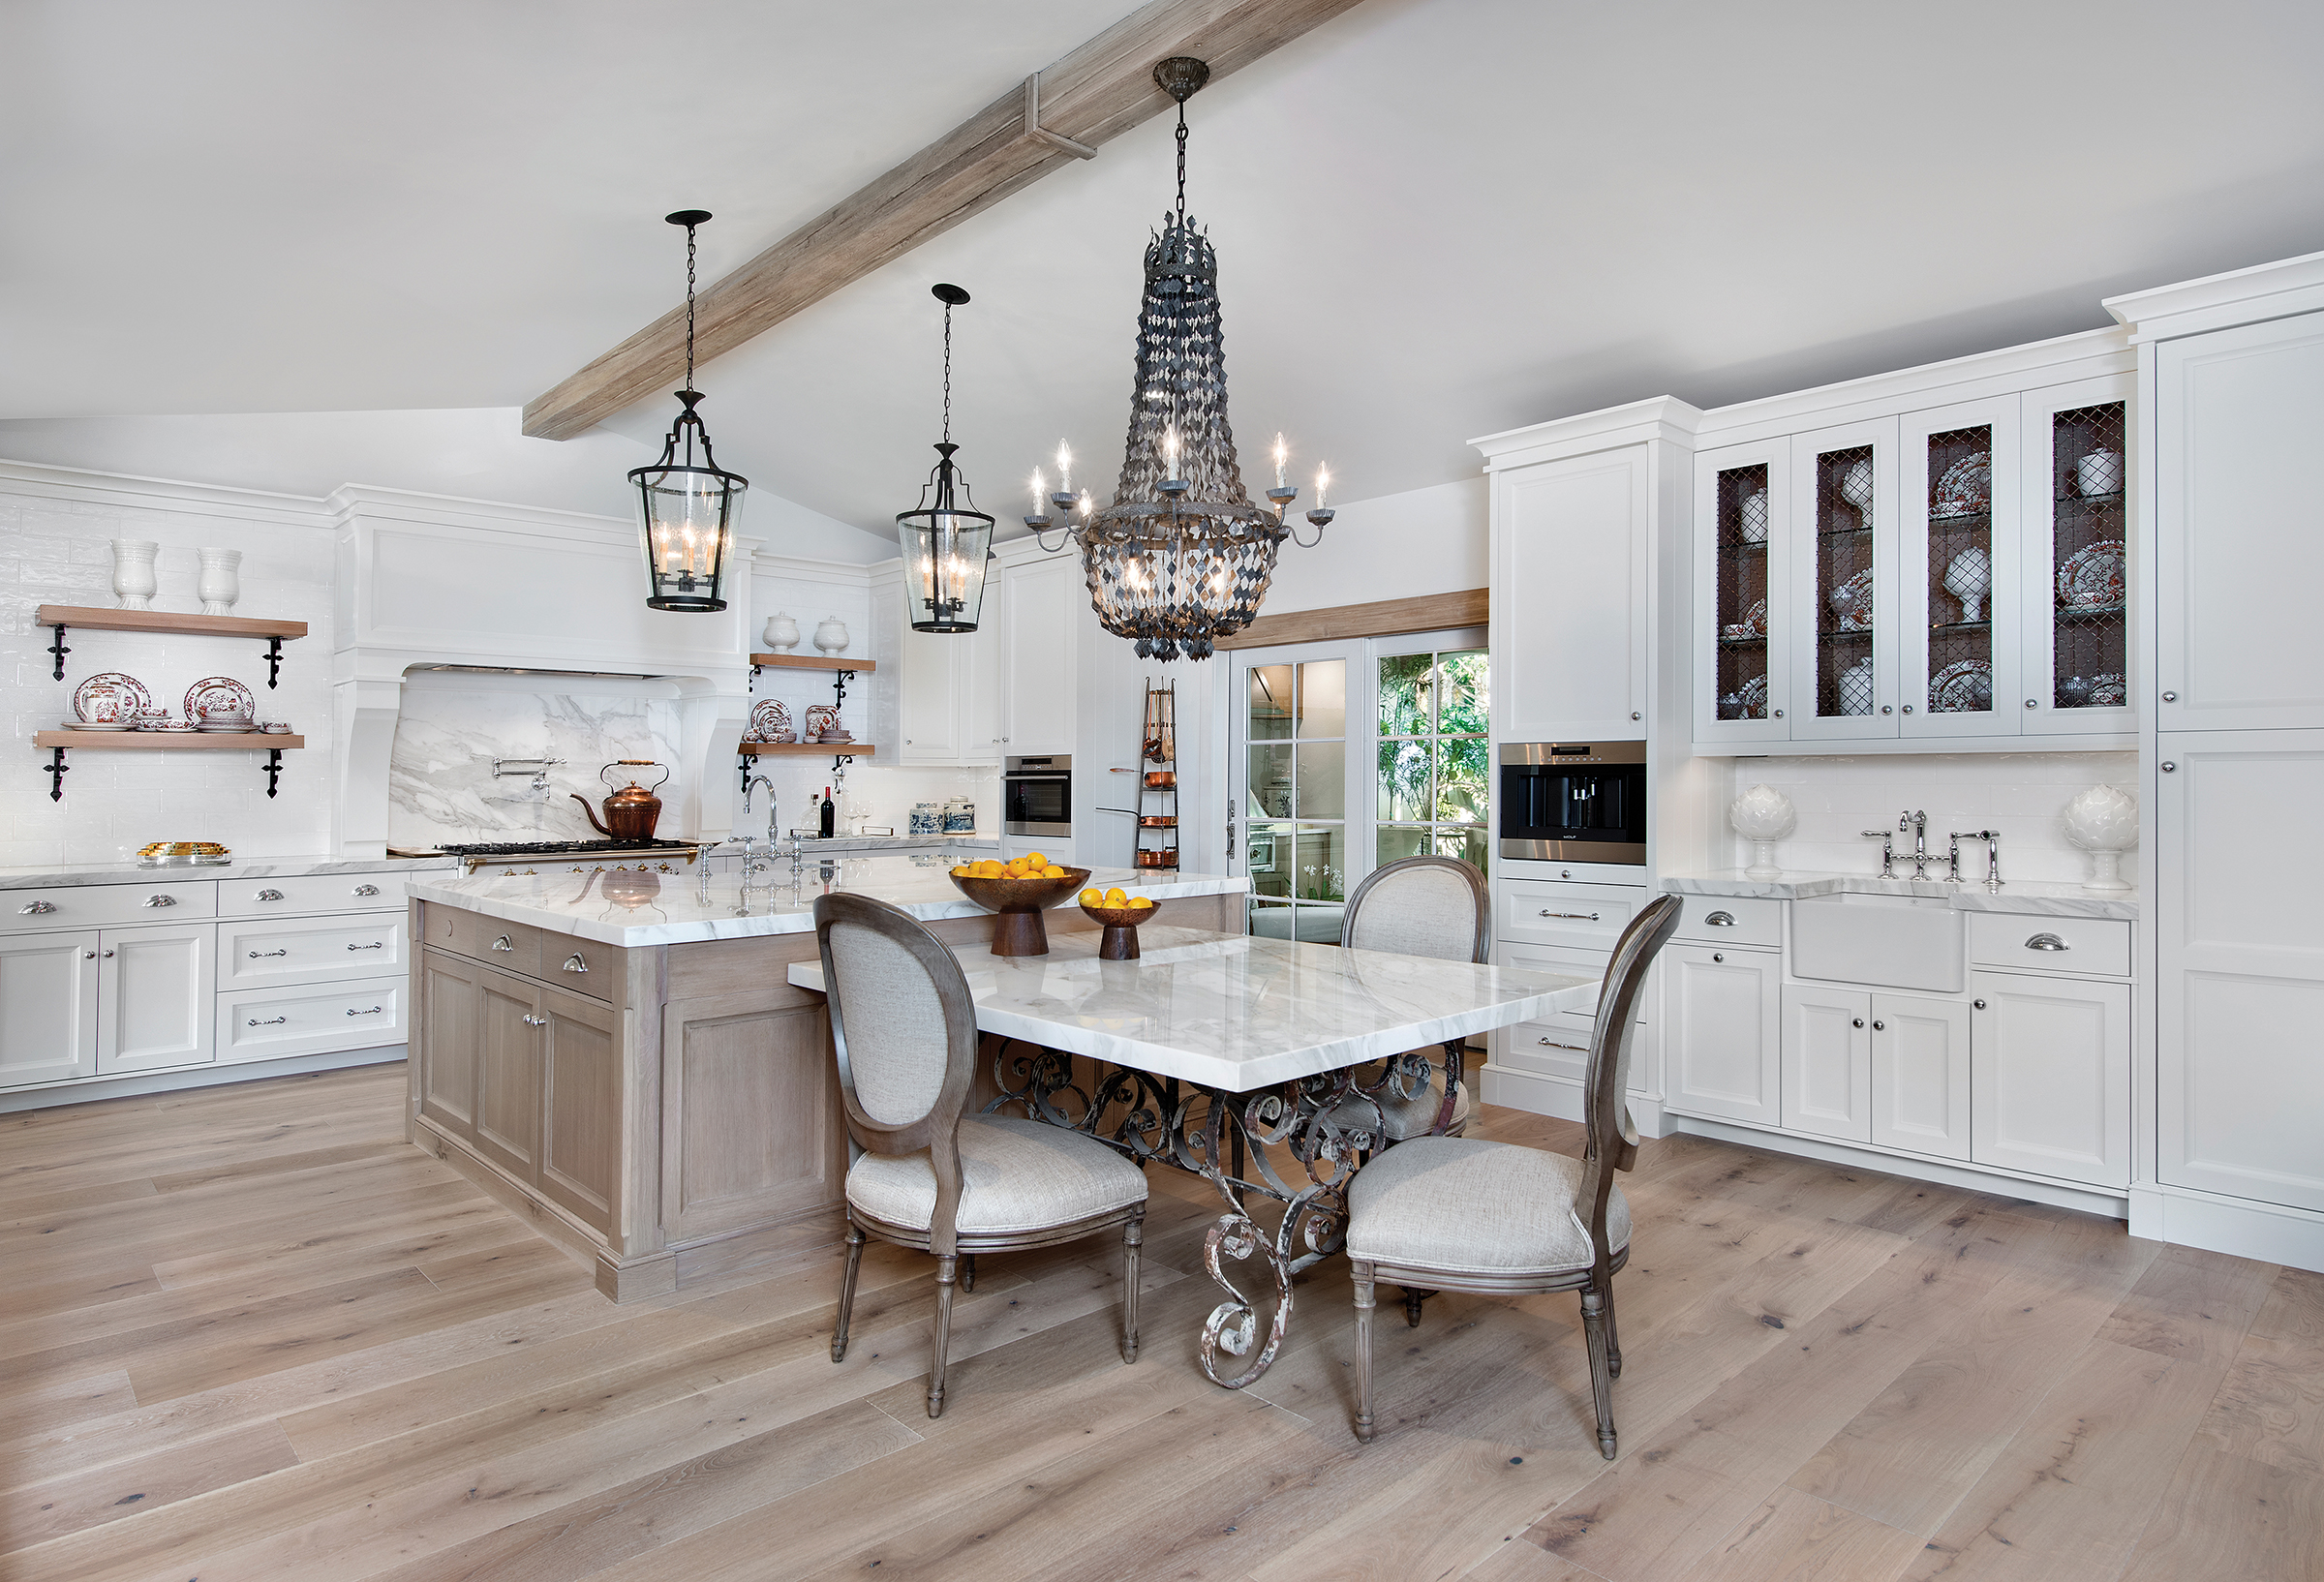 The French country kitchen is consistently one of the favorite rooms in the home. Designed by Carol Ruffino and manufactured by Ruffino Cabinetry, the Alabaster White-finished cabinets provide the perfect canvas on which to build. Wire-grill door inserts with limed oak T&G backs, and shelves with custom iron brackets complement the beautiful limed oak island. Ruffino's design incorporated a Lacanche Chassagne Classic Art Culinaire French range. Williams used the French pastry table at the end of the island to enhance the classic European look. Calcutta Gold marble and French white oak flooring complete the space.